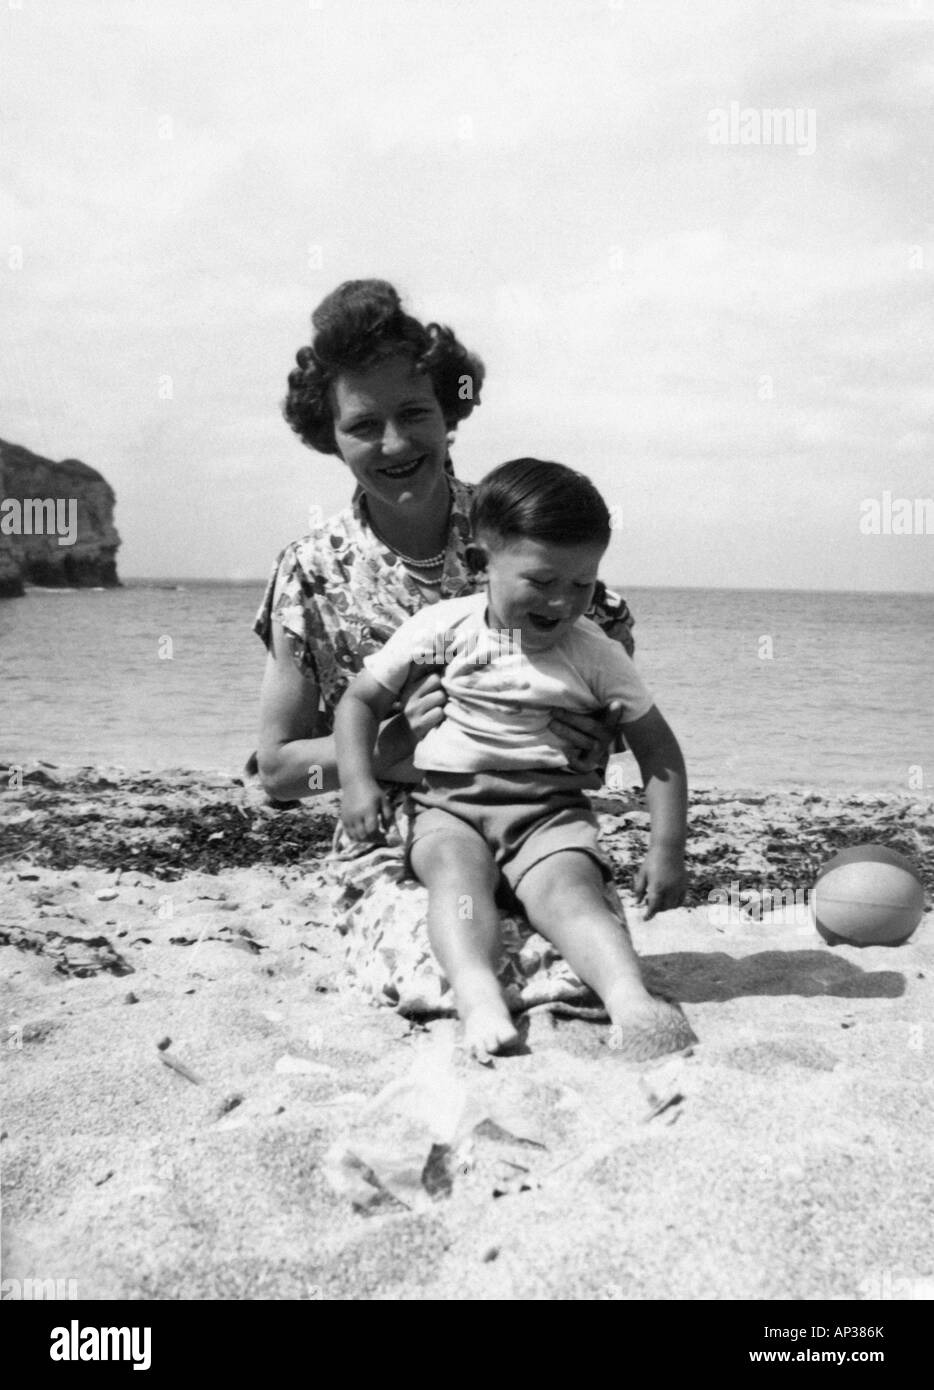 Old Black And White Family Portrait Snap Shot Of Mother And Son